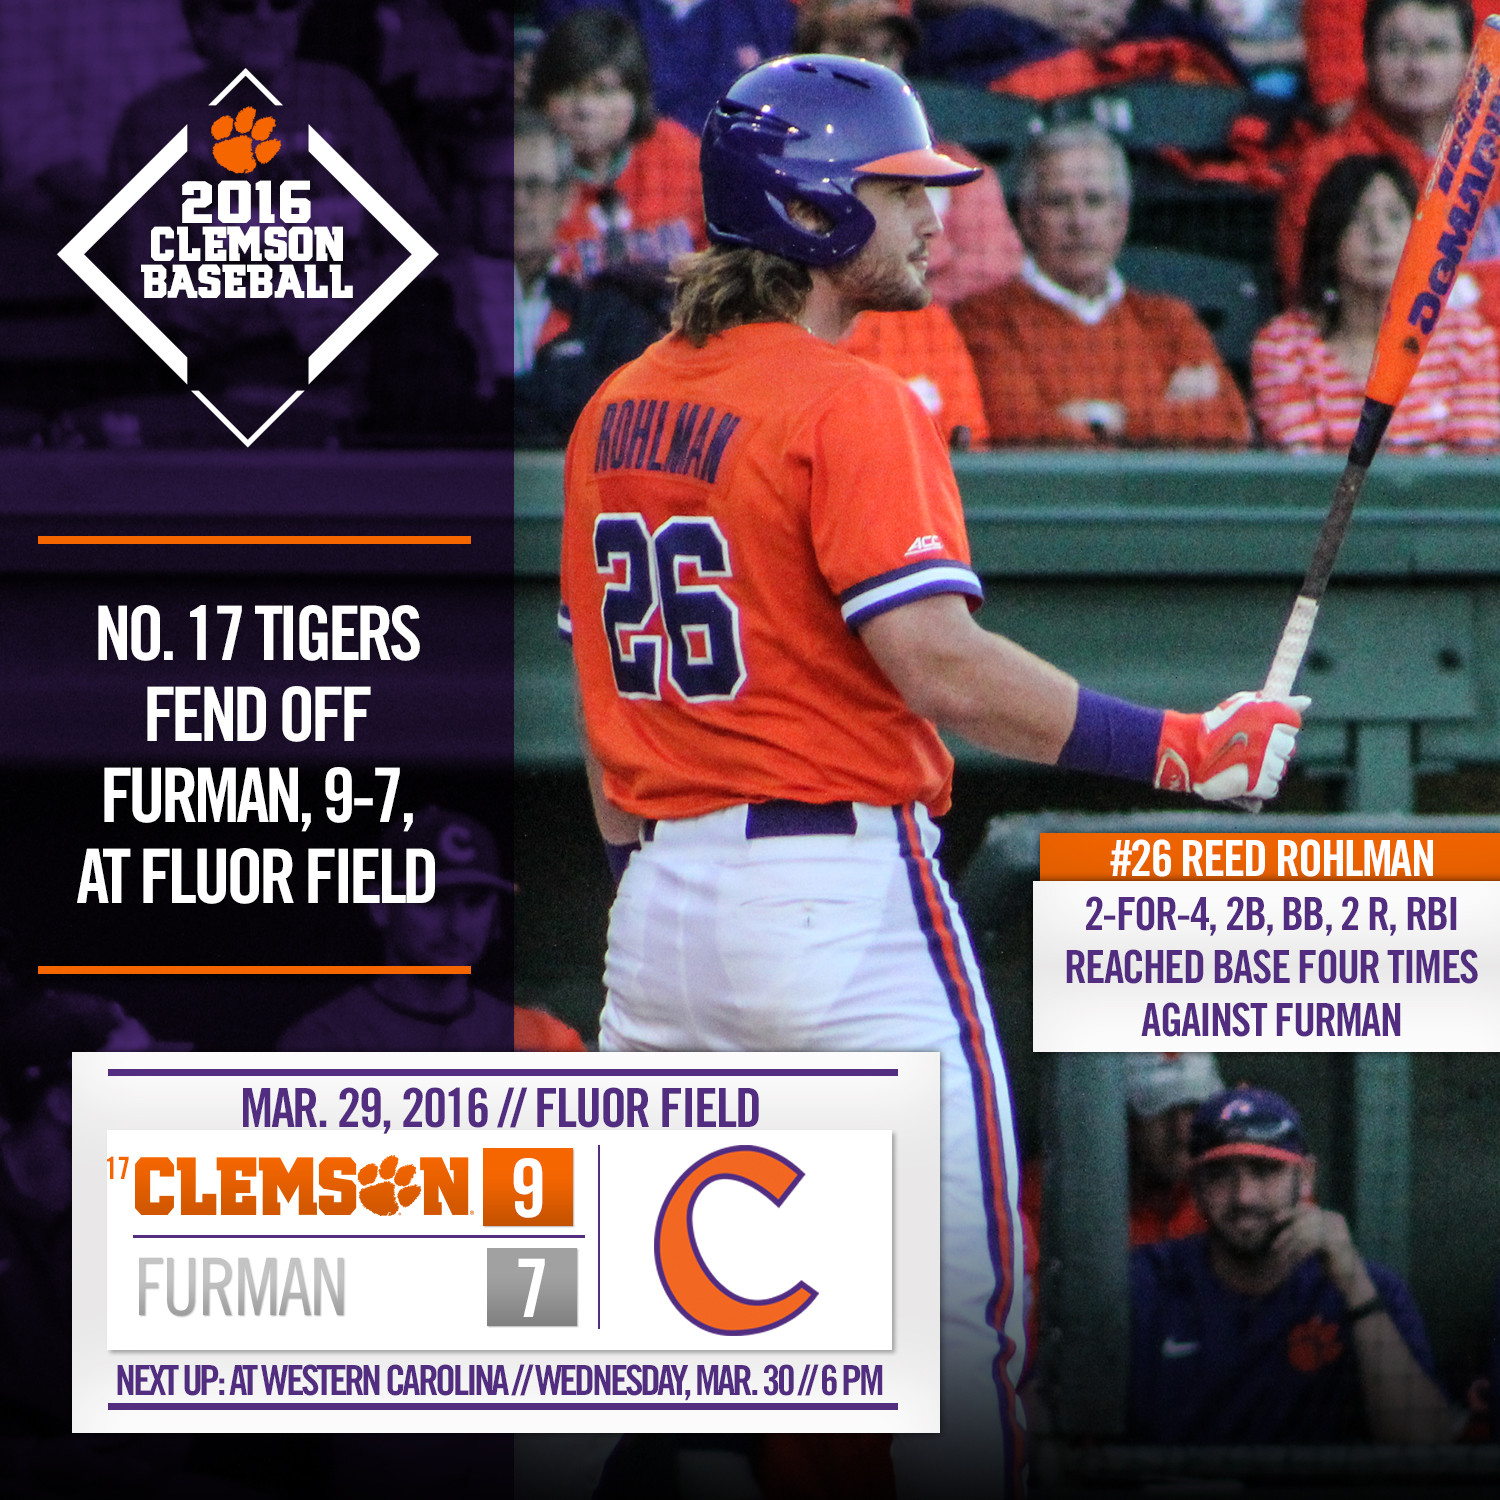 No. 17 Tigers Top Furman 9-7